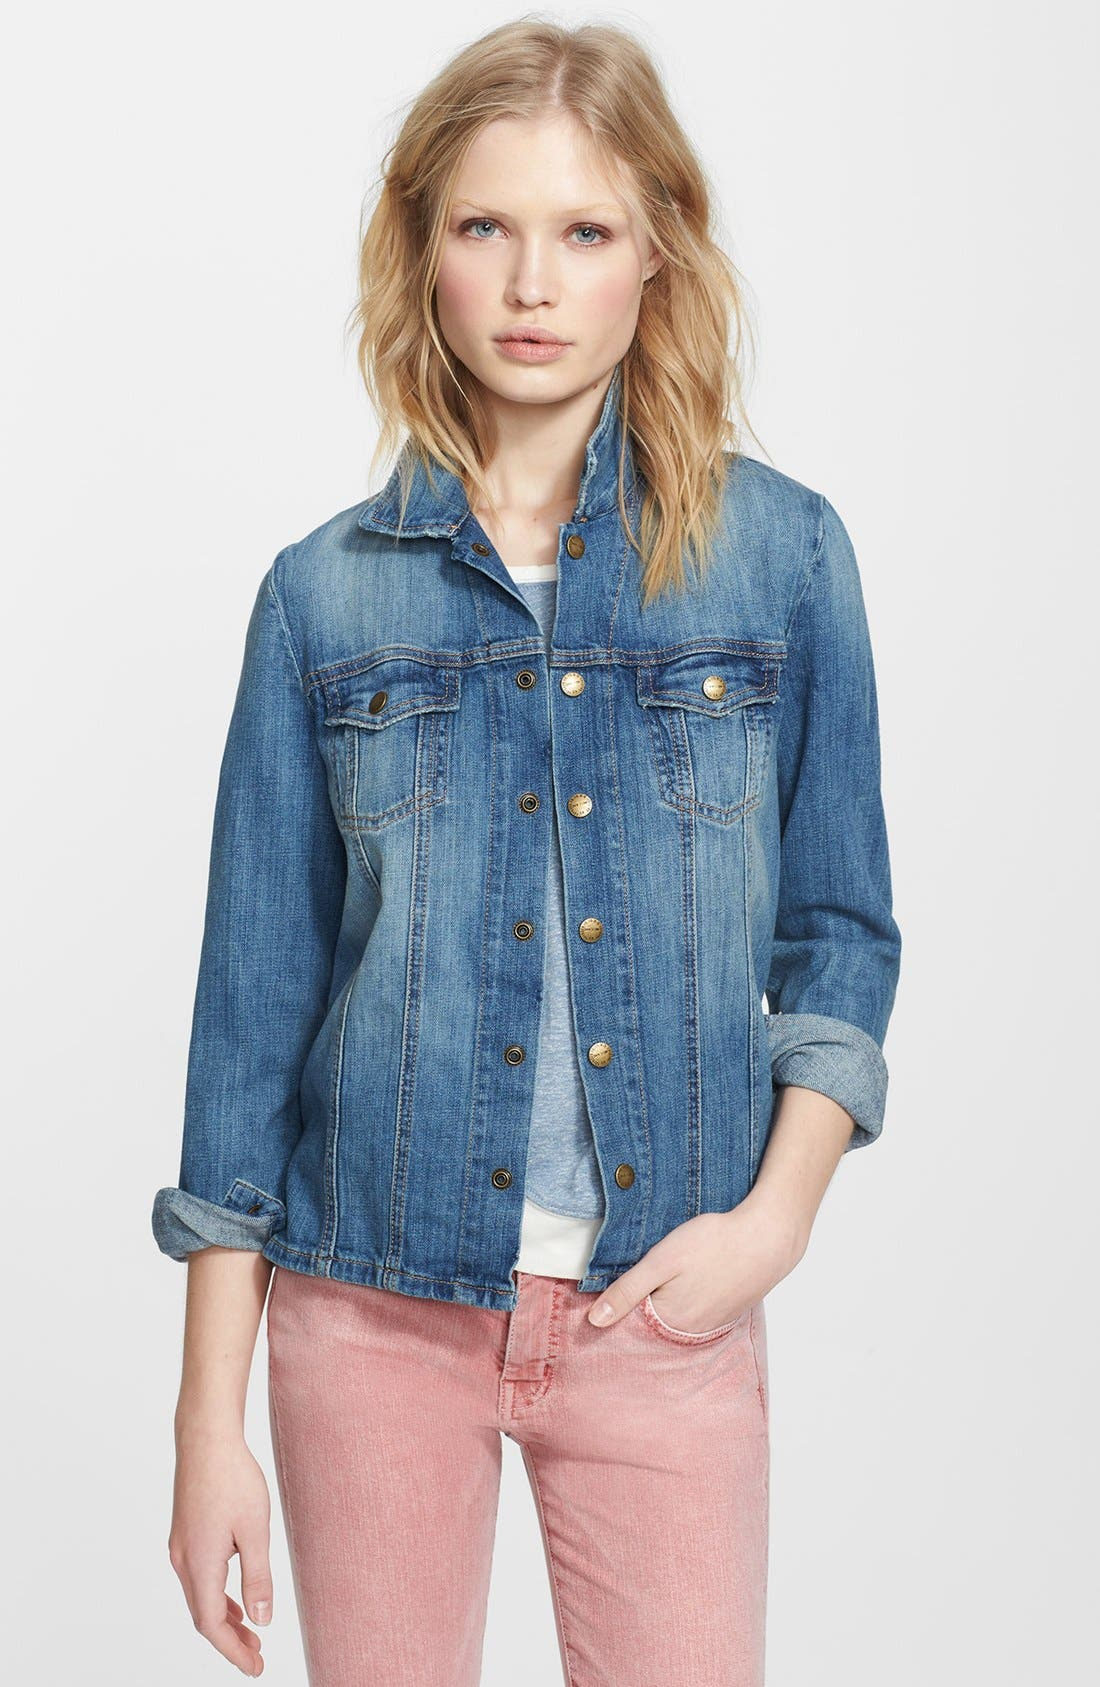 Alternate Image 1 Selected - Current/Elliott 'The Mechanic' Jean Jacket